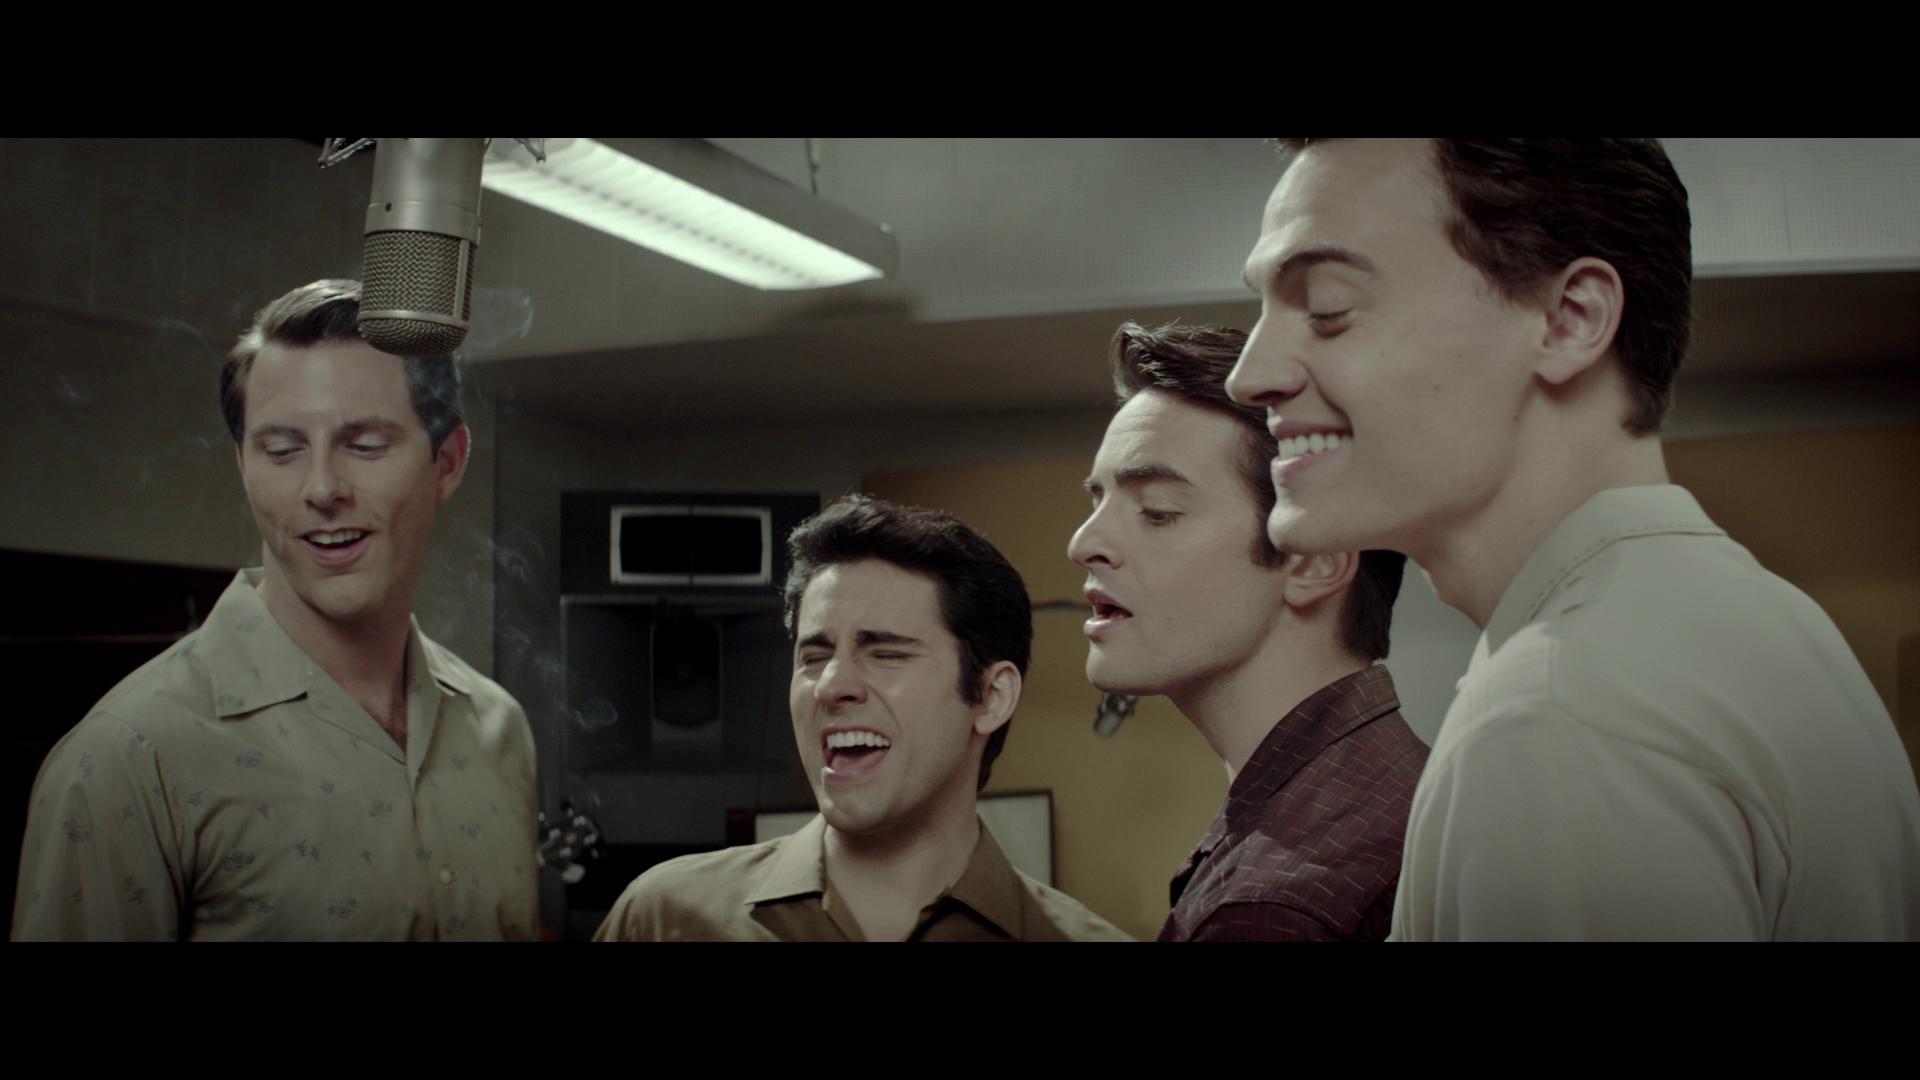 Jersey Boys (Blu-ray) : DVD Talk Review of the Blu-ray